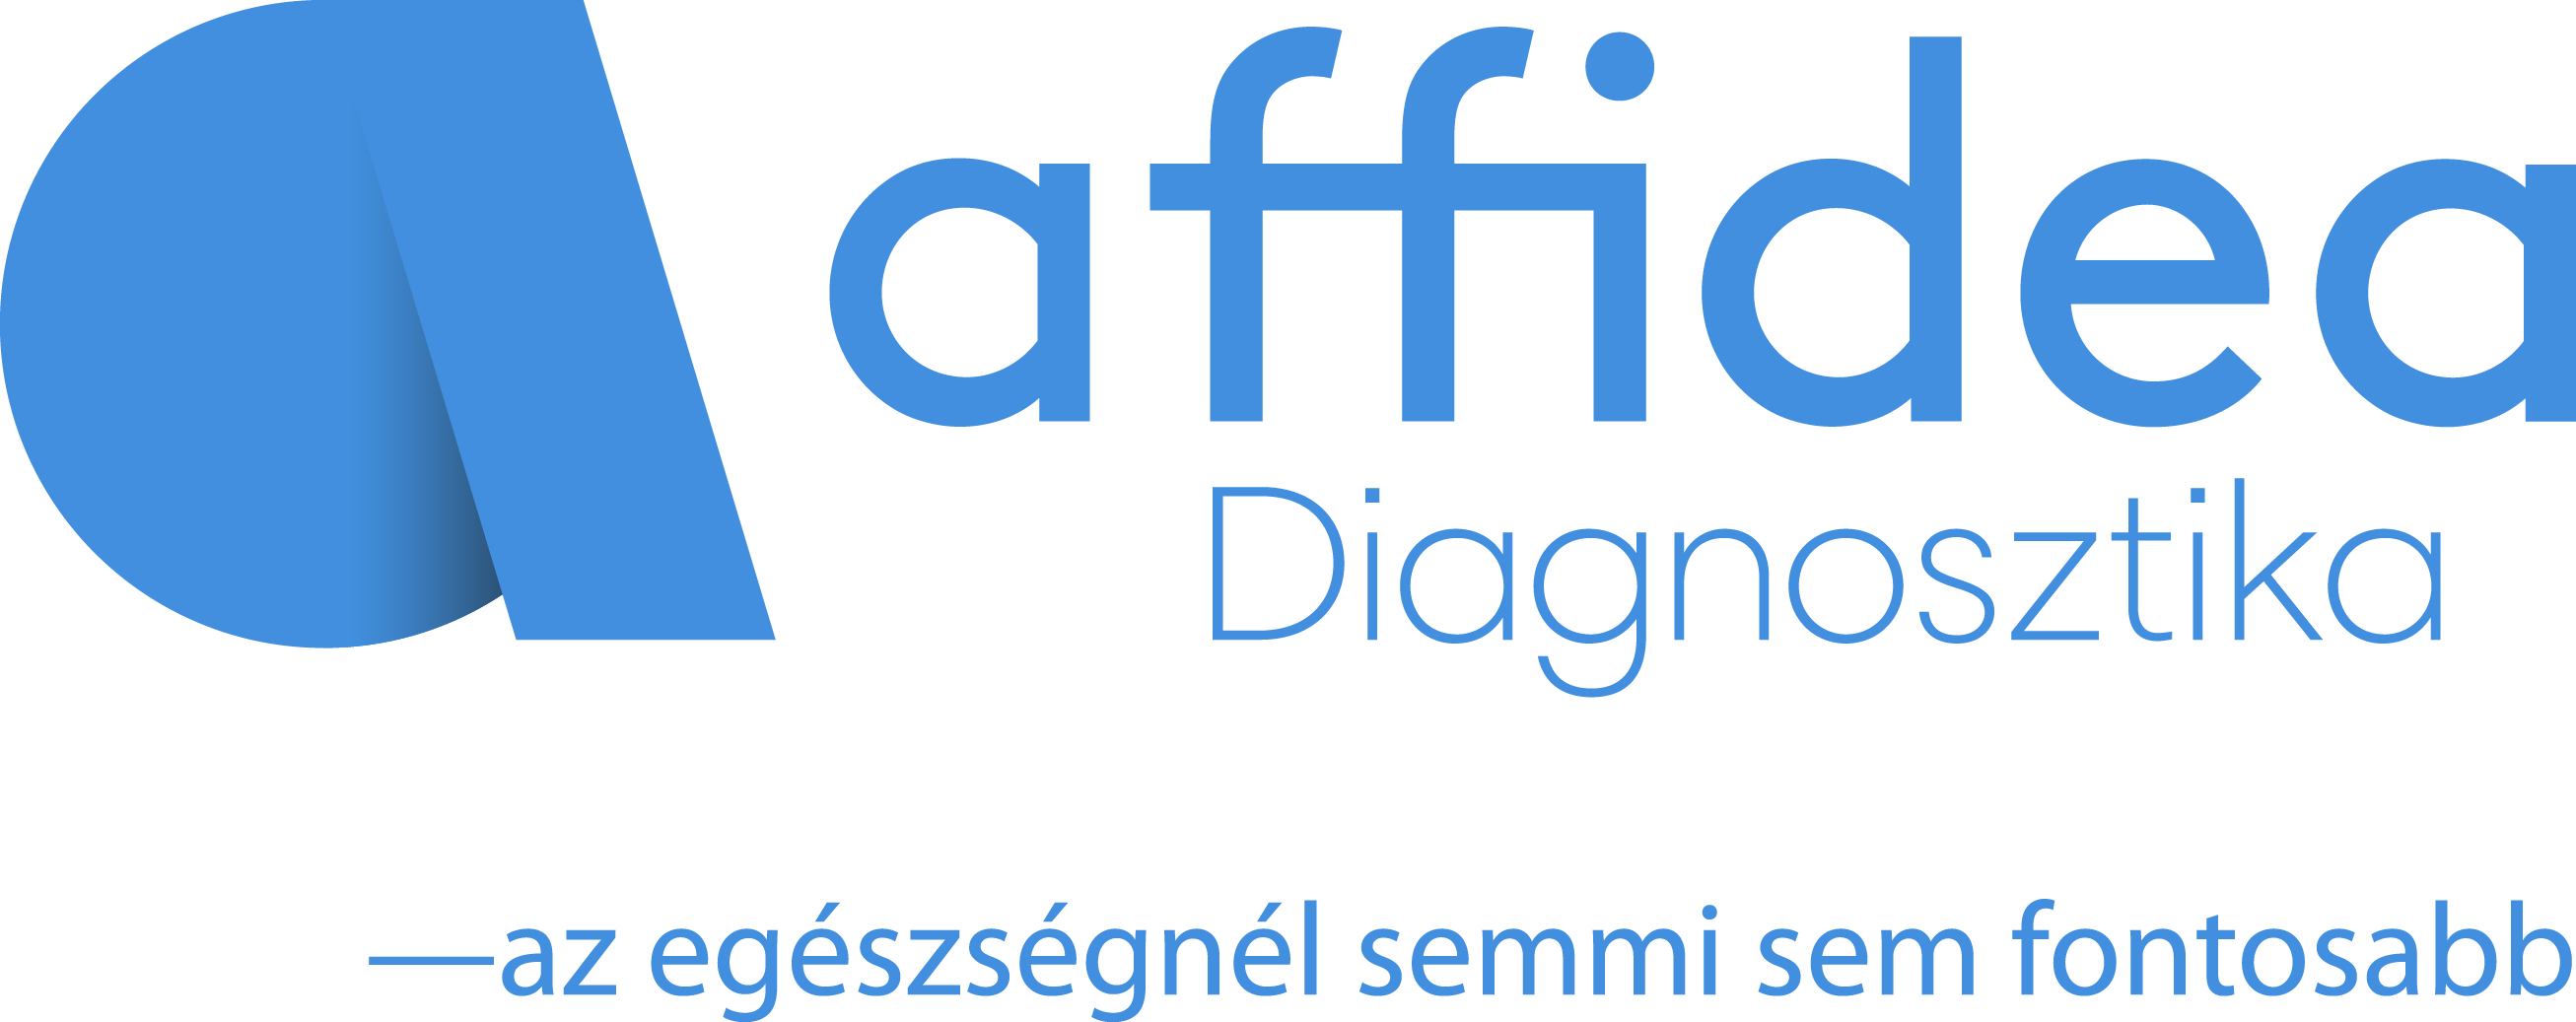 Affidea_Diagnosztikat_logo_rgb_2016_statement